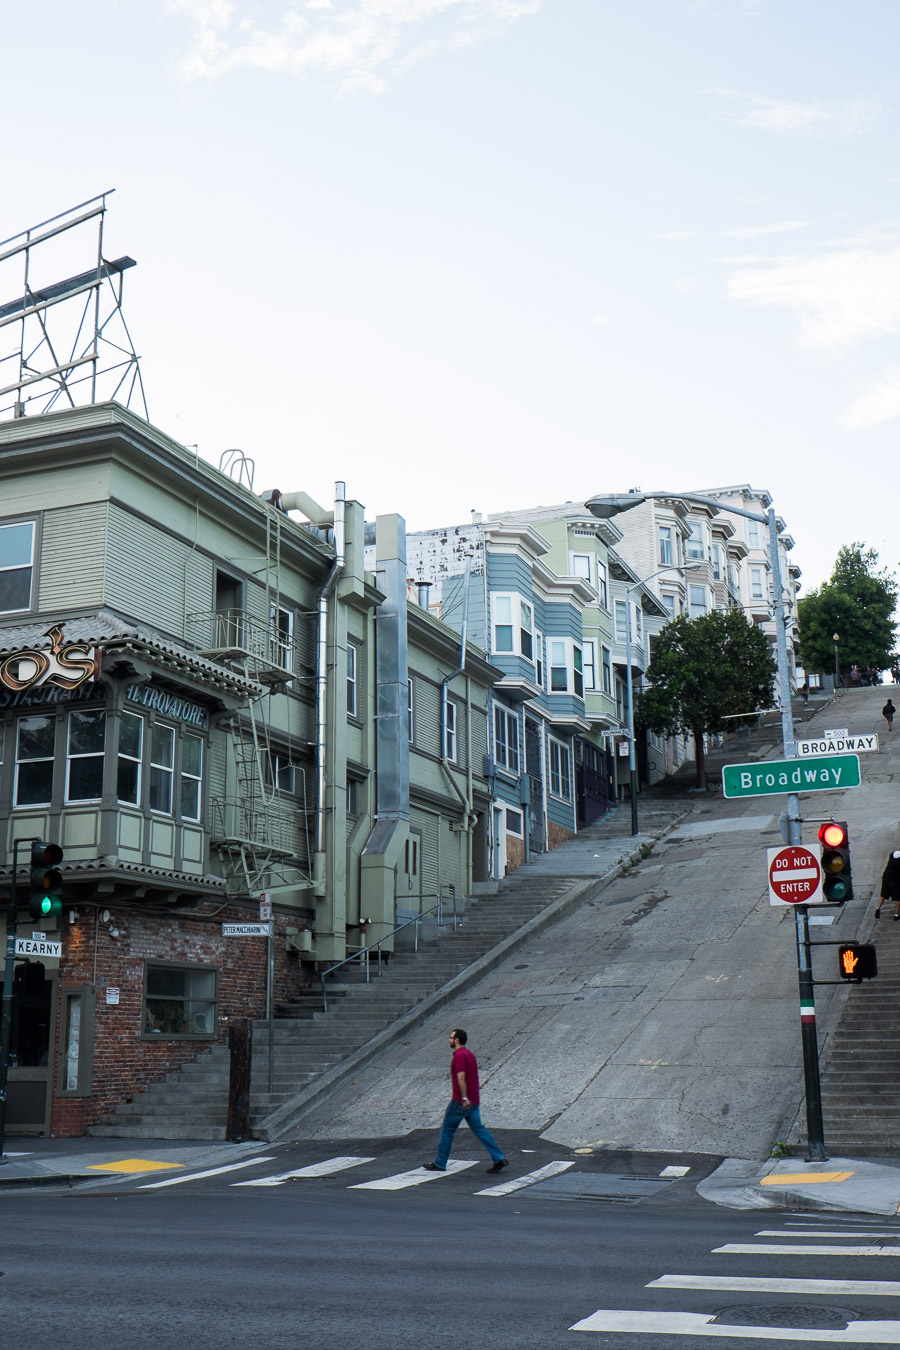 San Francisco has extremely steep hills. I walked up many of them.